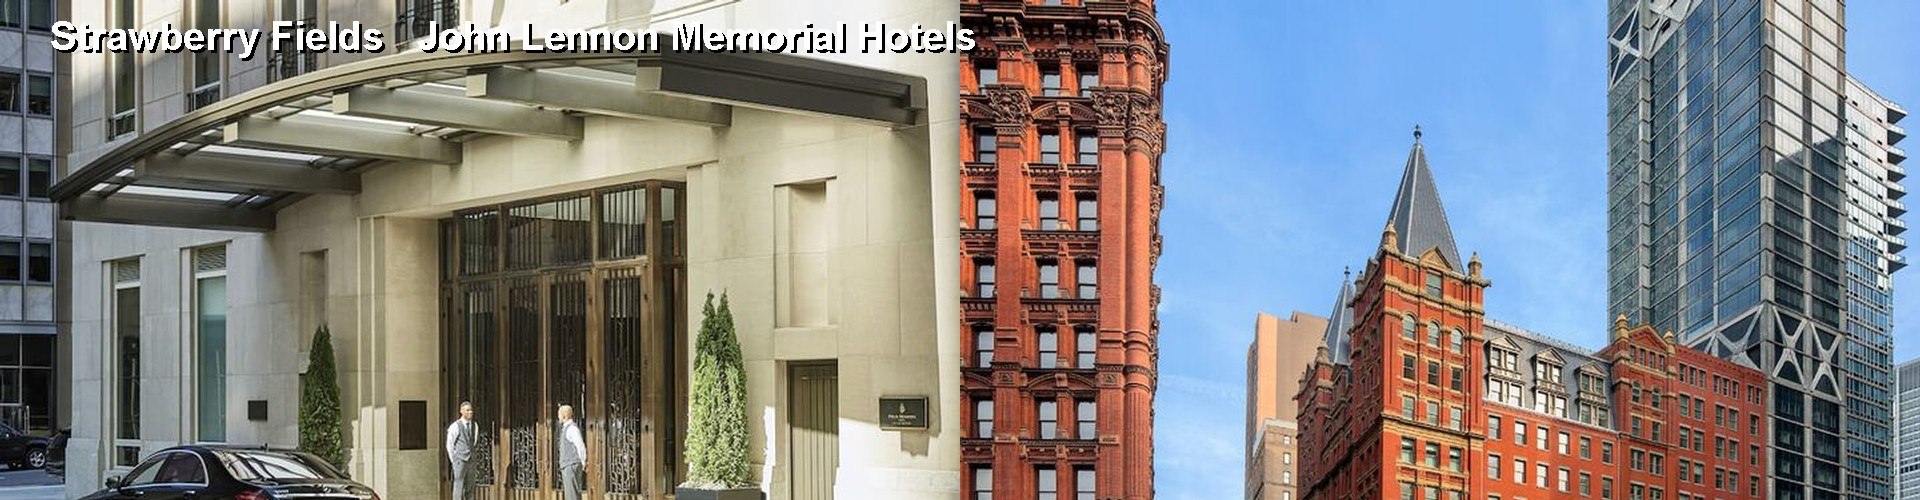 5 Best Hotels near Strawberry Fields John Lennon Memorial